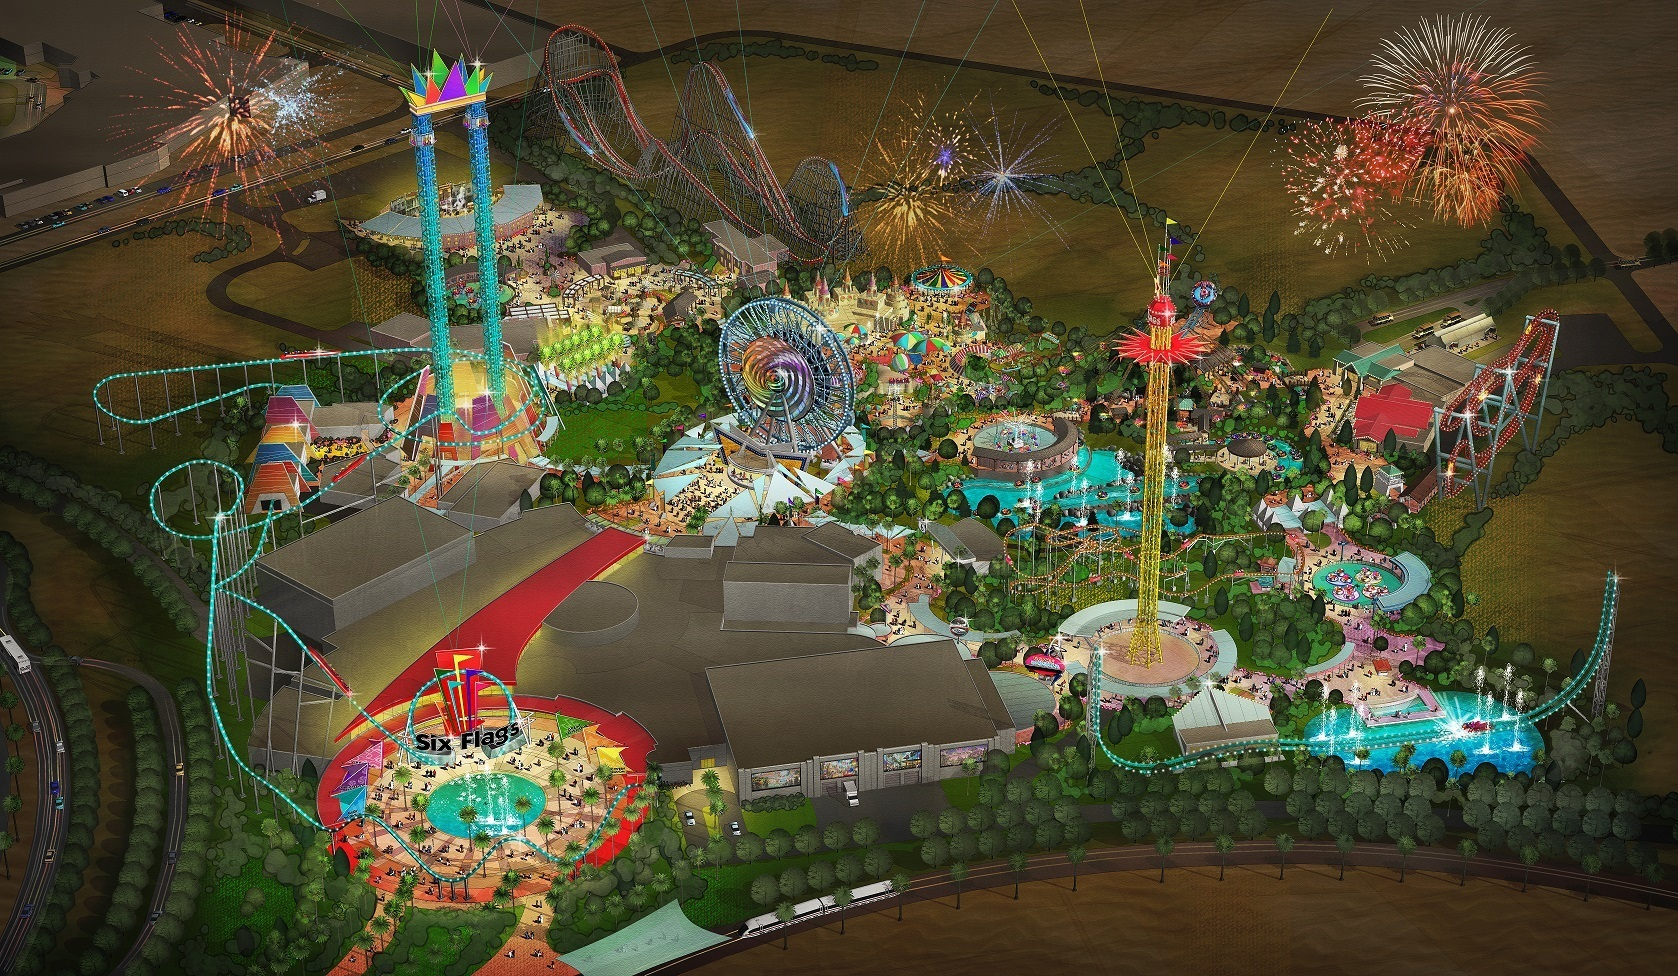 Six Flags Dubai will have 27 rides and attractions throughout the intricately themed park that will appeal to thrill-seekers of all ages, including world-record breaking roller coasters, water slides, shows and a variety of food offerings. (Photo: Business Wire)